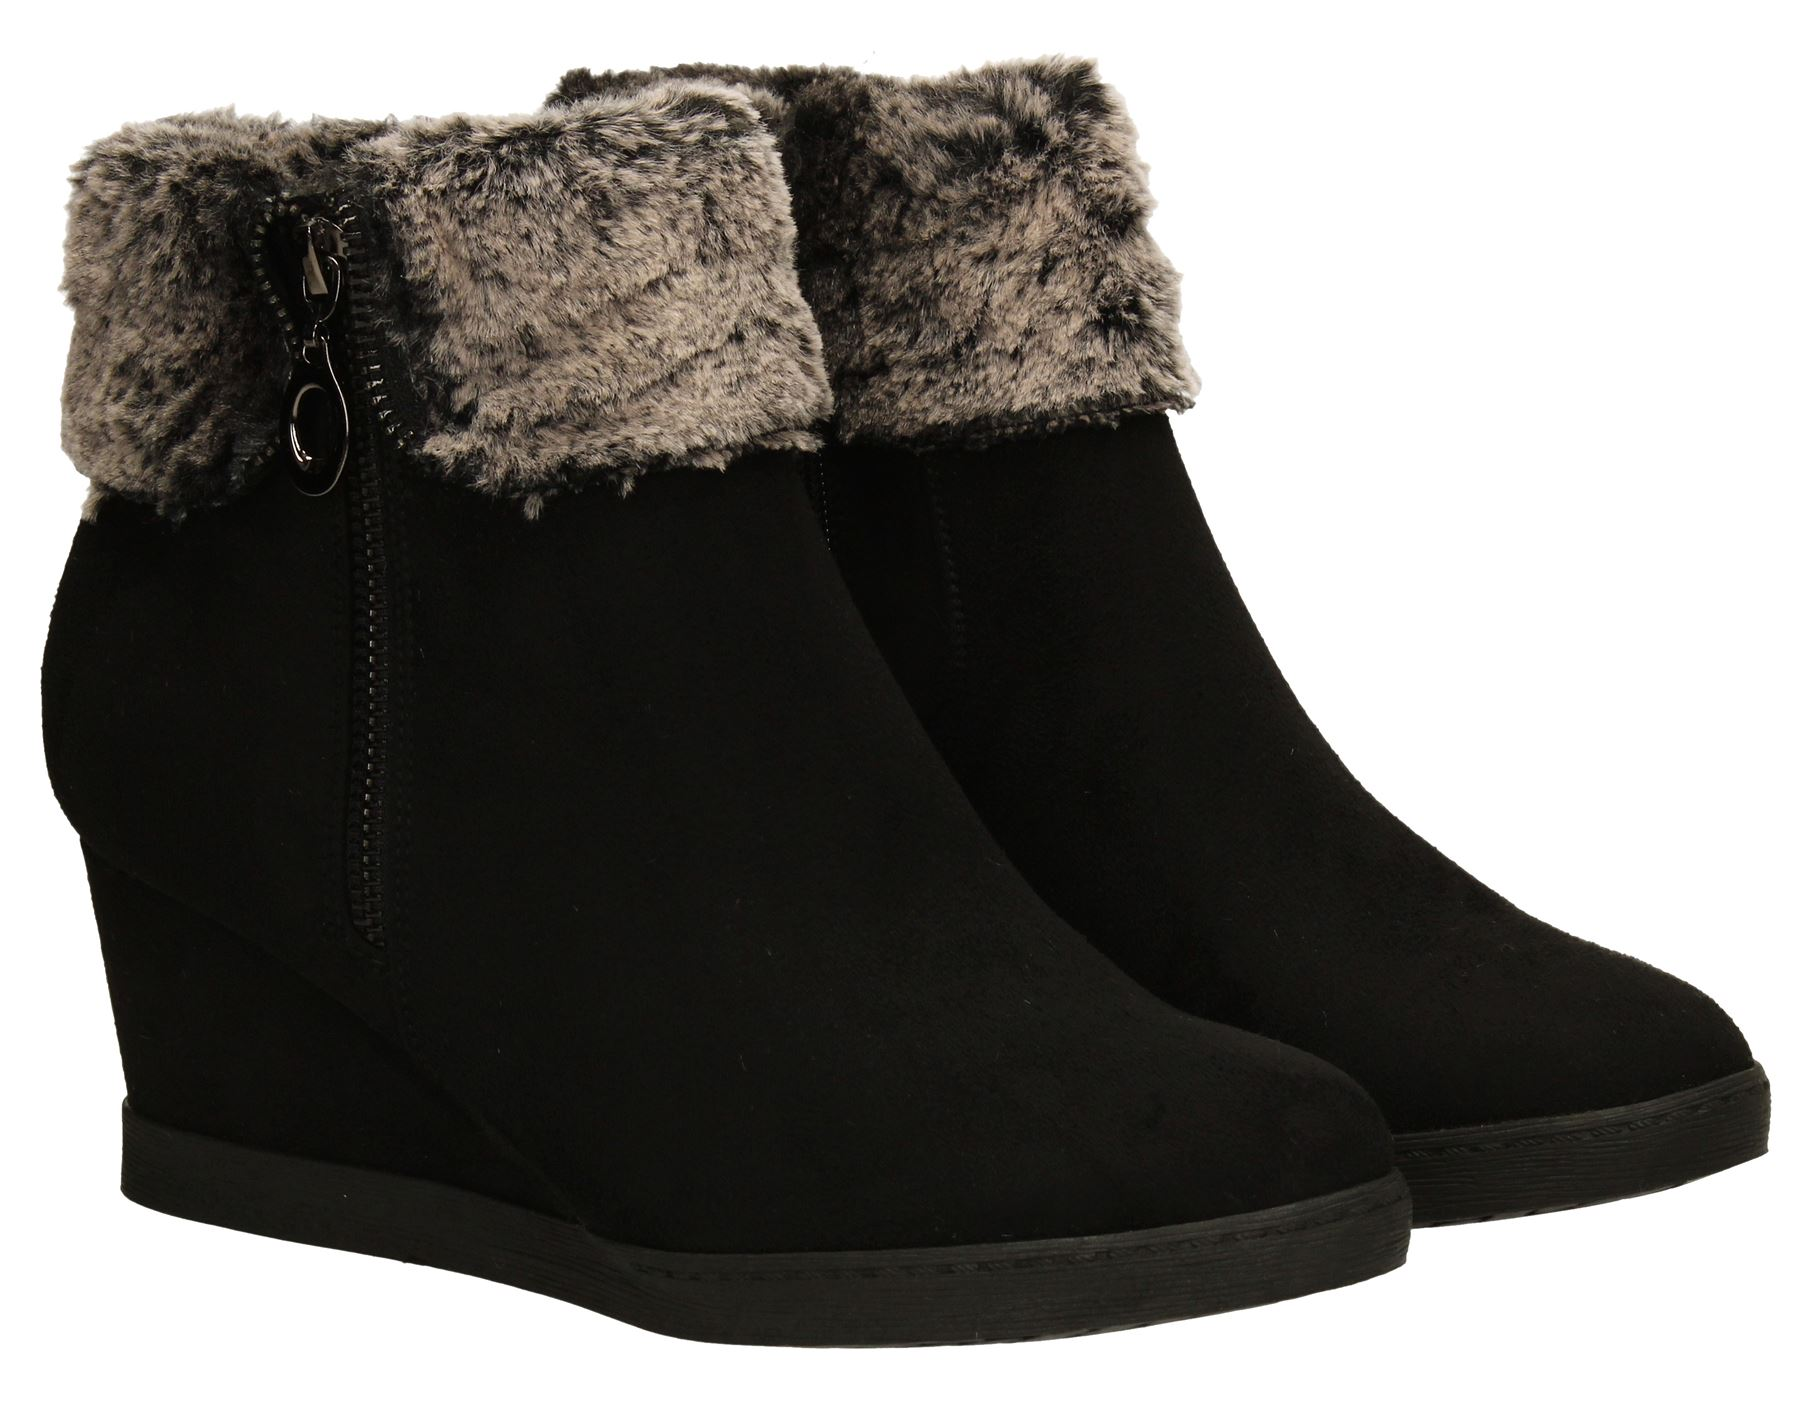 womens suede black wedge boots fur collar winter warm